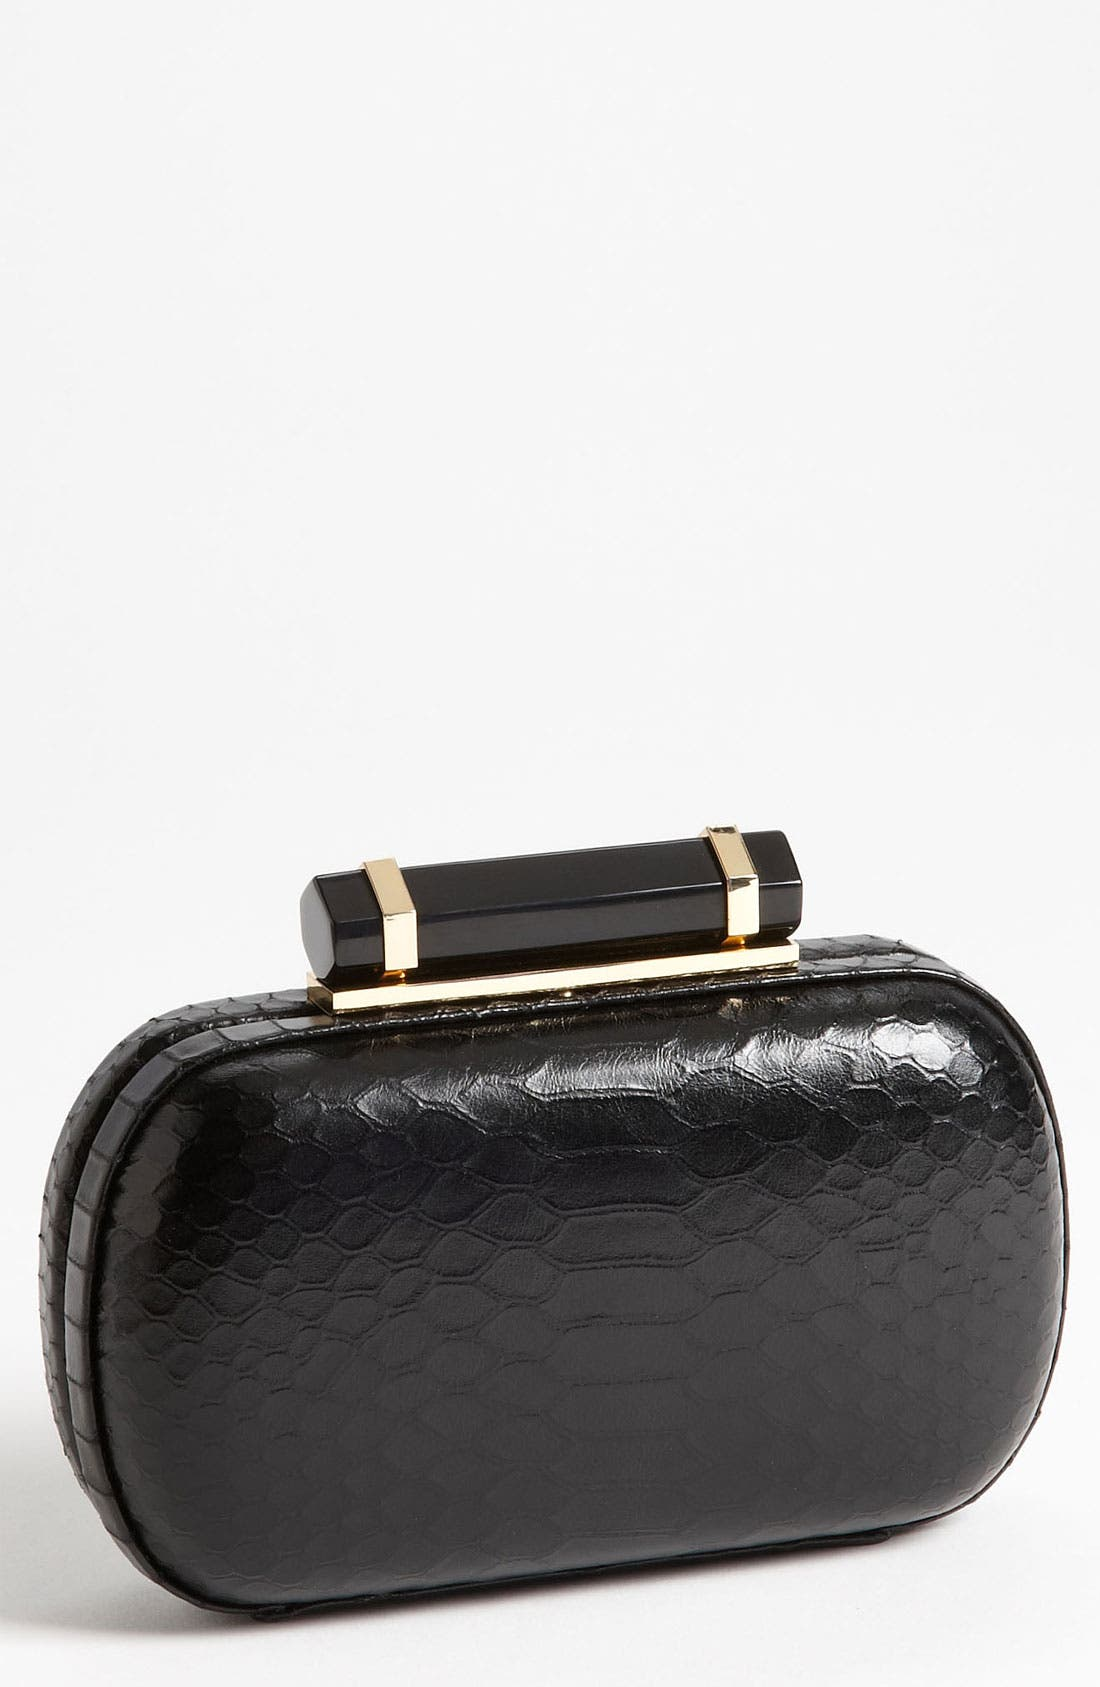 Alternate Image 1 Selected - Vince Camuto 'Onyx French' Clutch